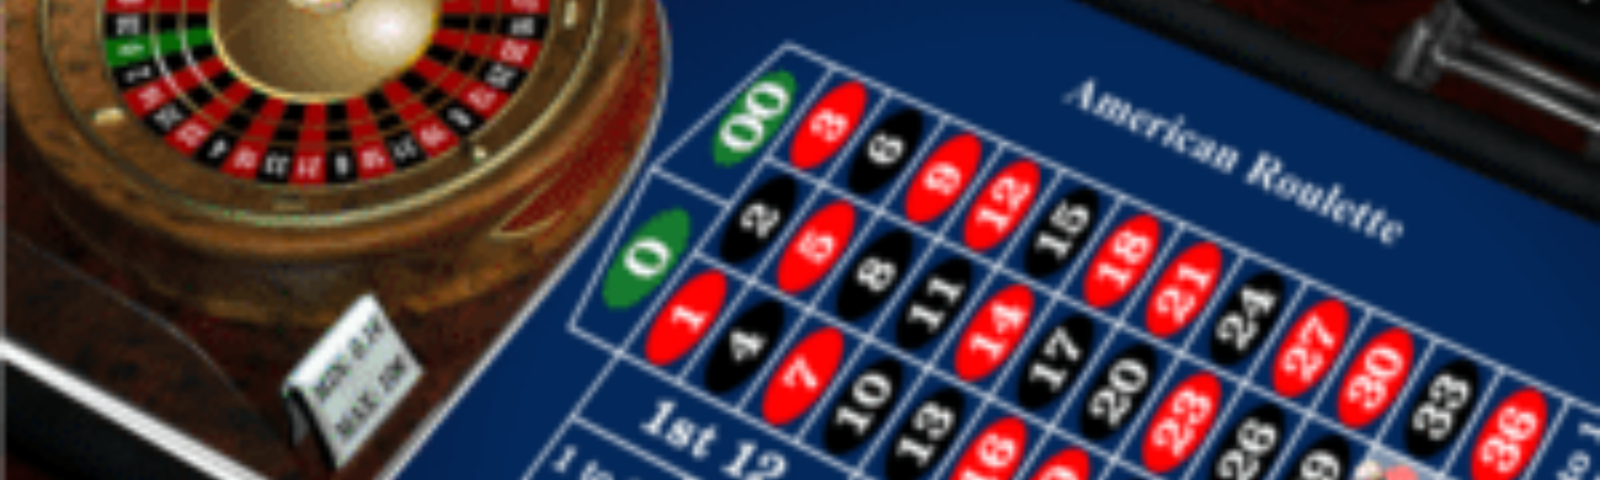 American Roulette iSoft Automat Online Zdarma